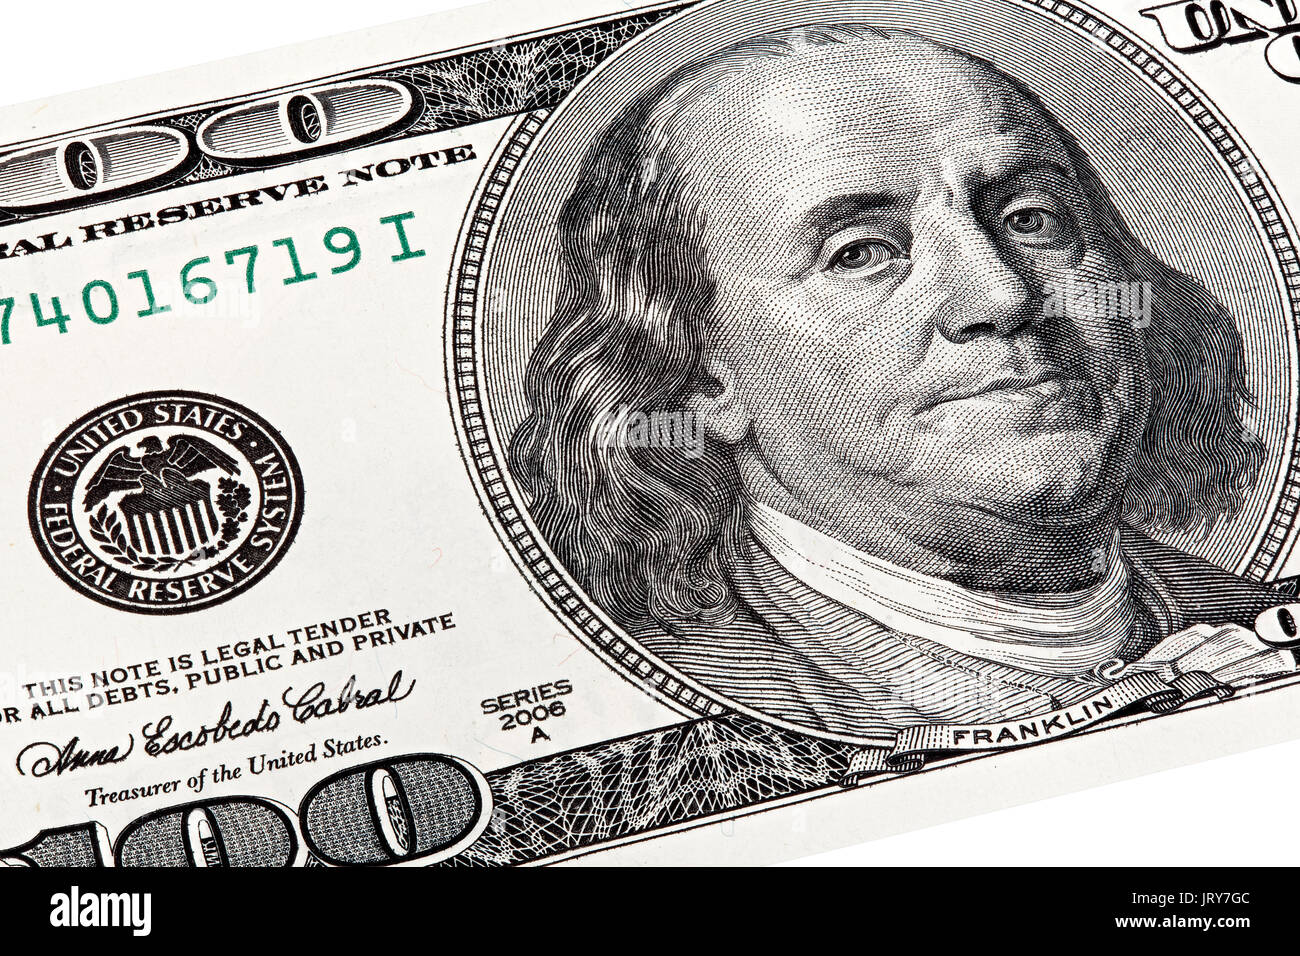 2013 100 Dollar United States Stock Photos & 2013 100 Dollar